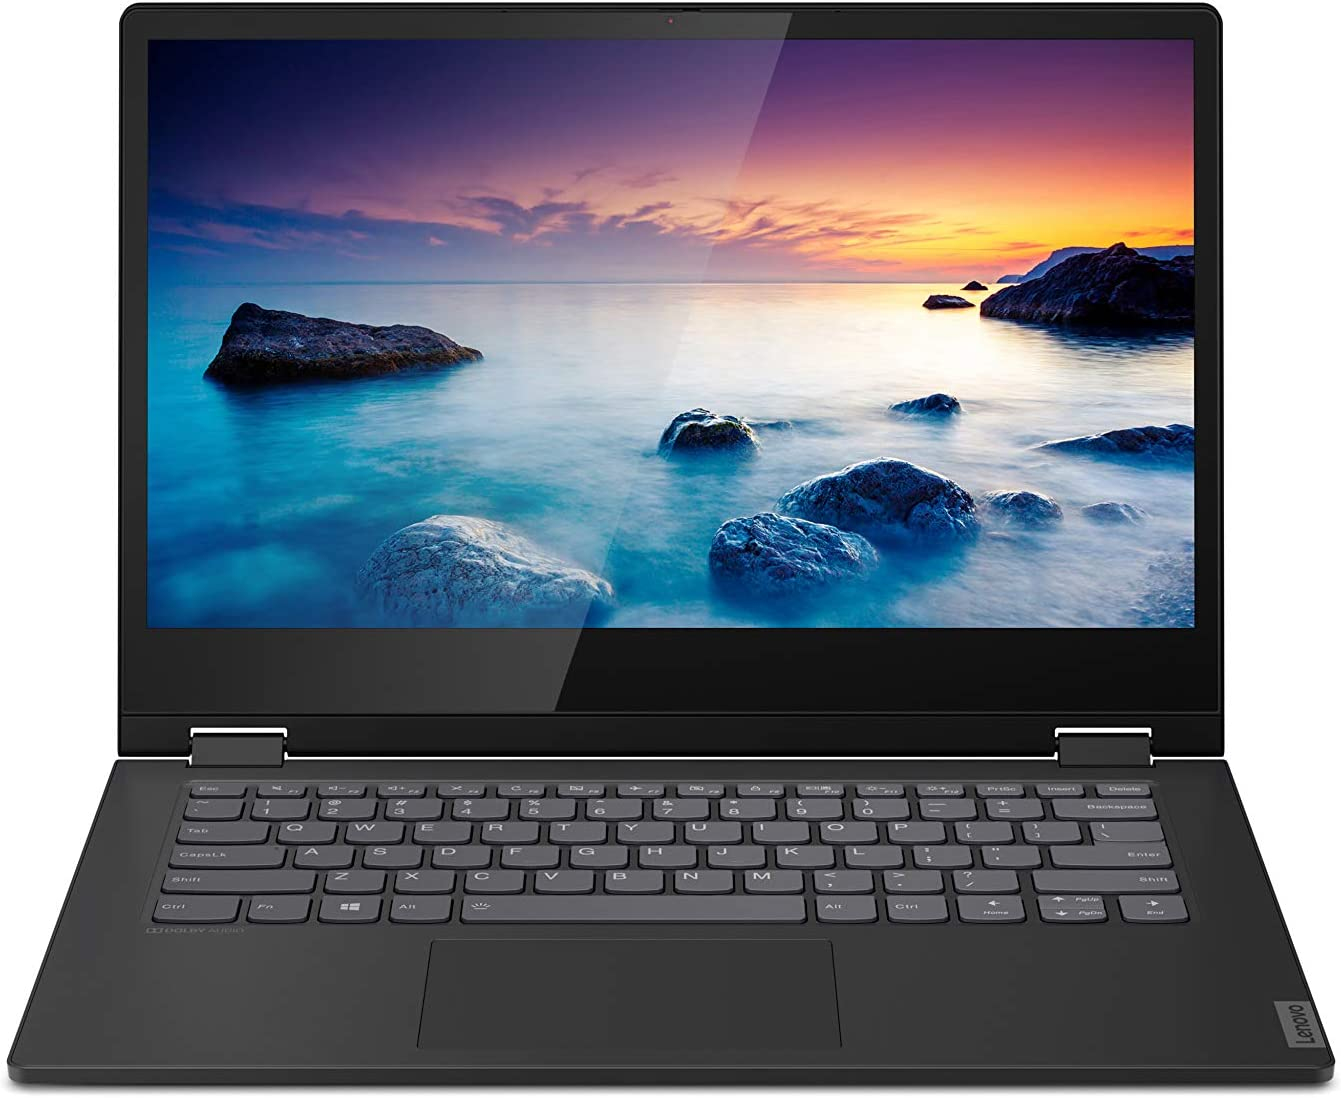 Deals on Lenovo Flex 14 81SQ000EUS 14-in Touch Laptop w/Intel Pentium